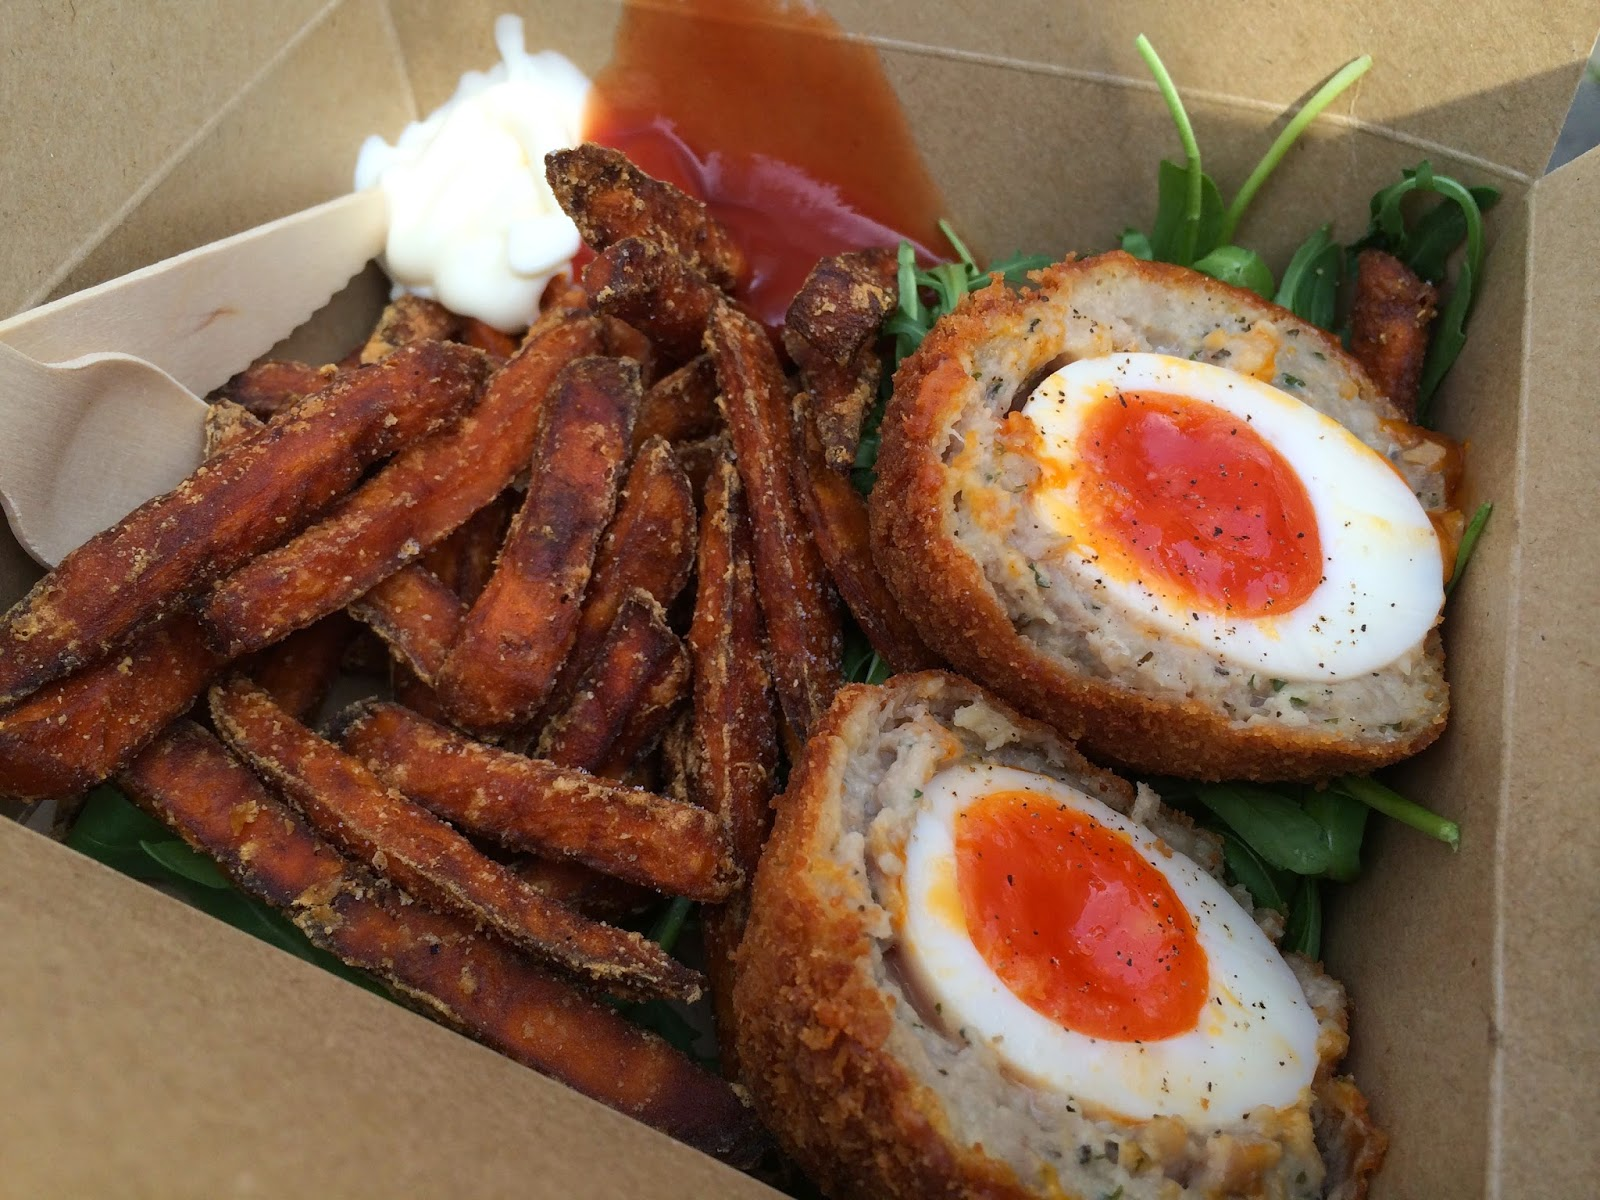 Scotch eggs by scotchtails borough market lucy loves to eat what does it take to make a good scotch egg a soft boiled egg with a runny centre juicy and flavourful sausage meat and a crispy breadcrumb coating forumfinder